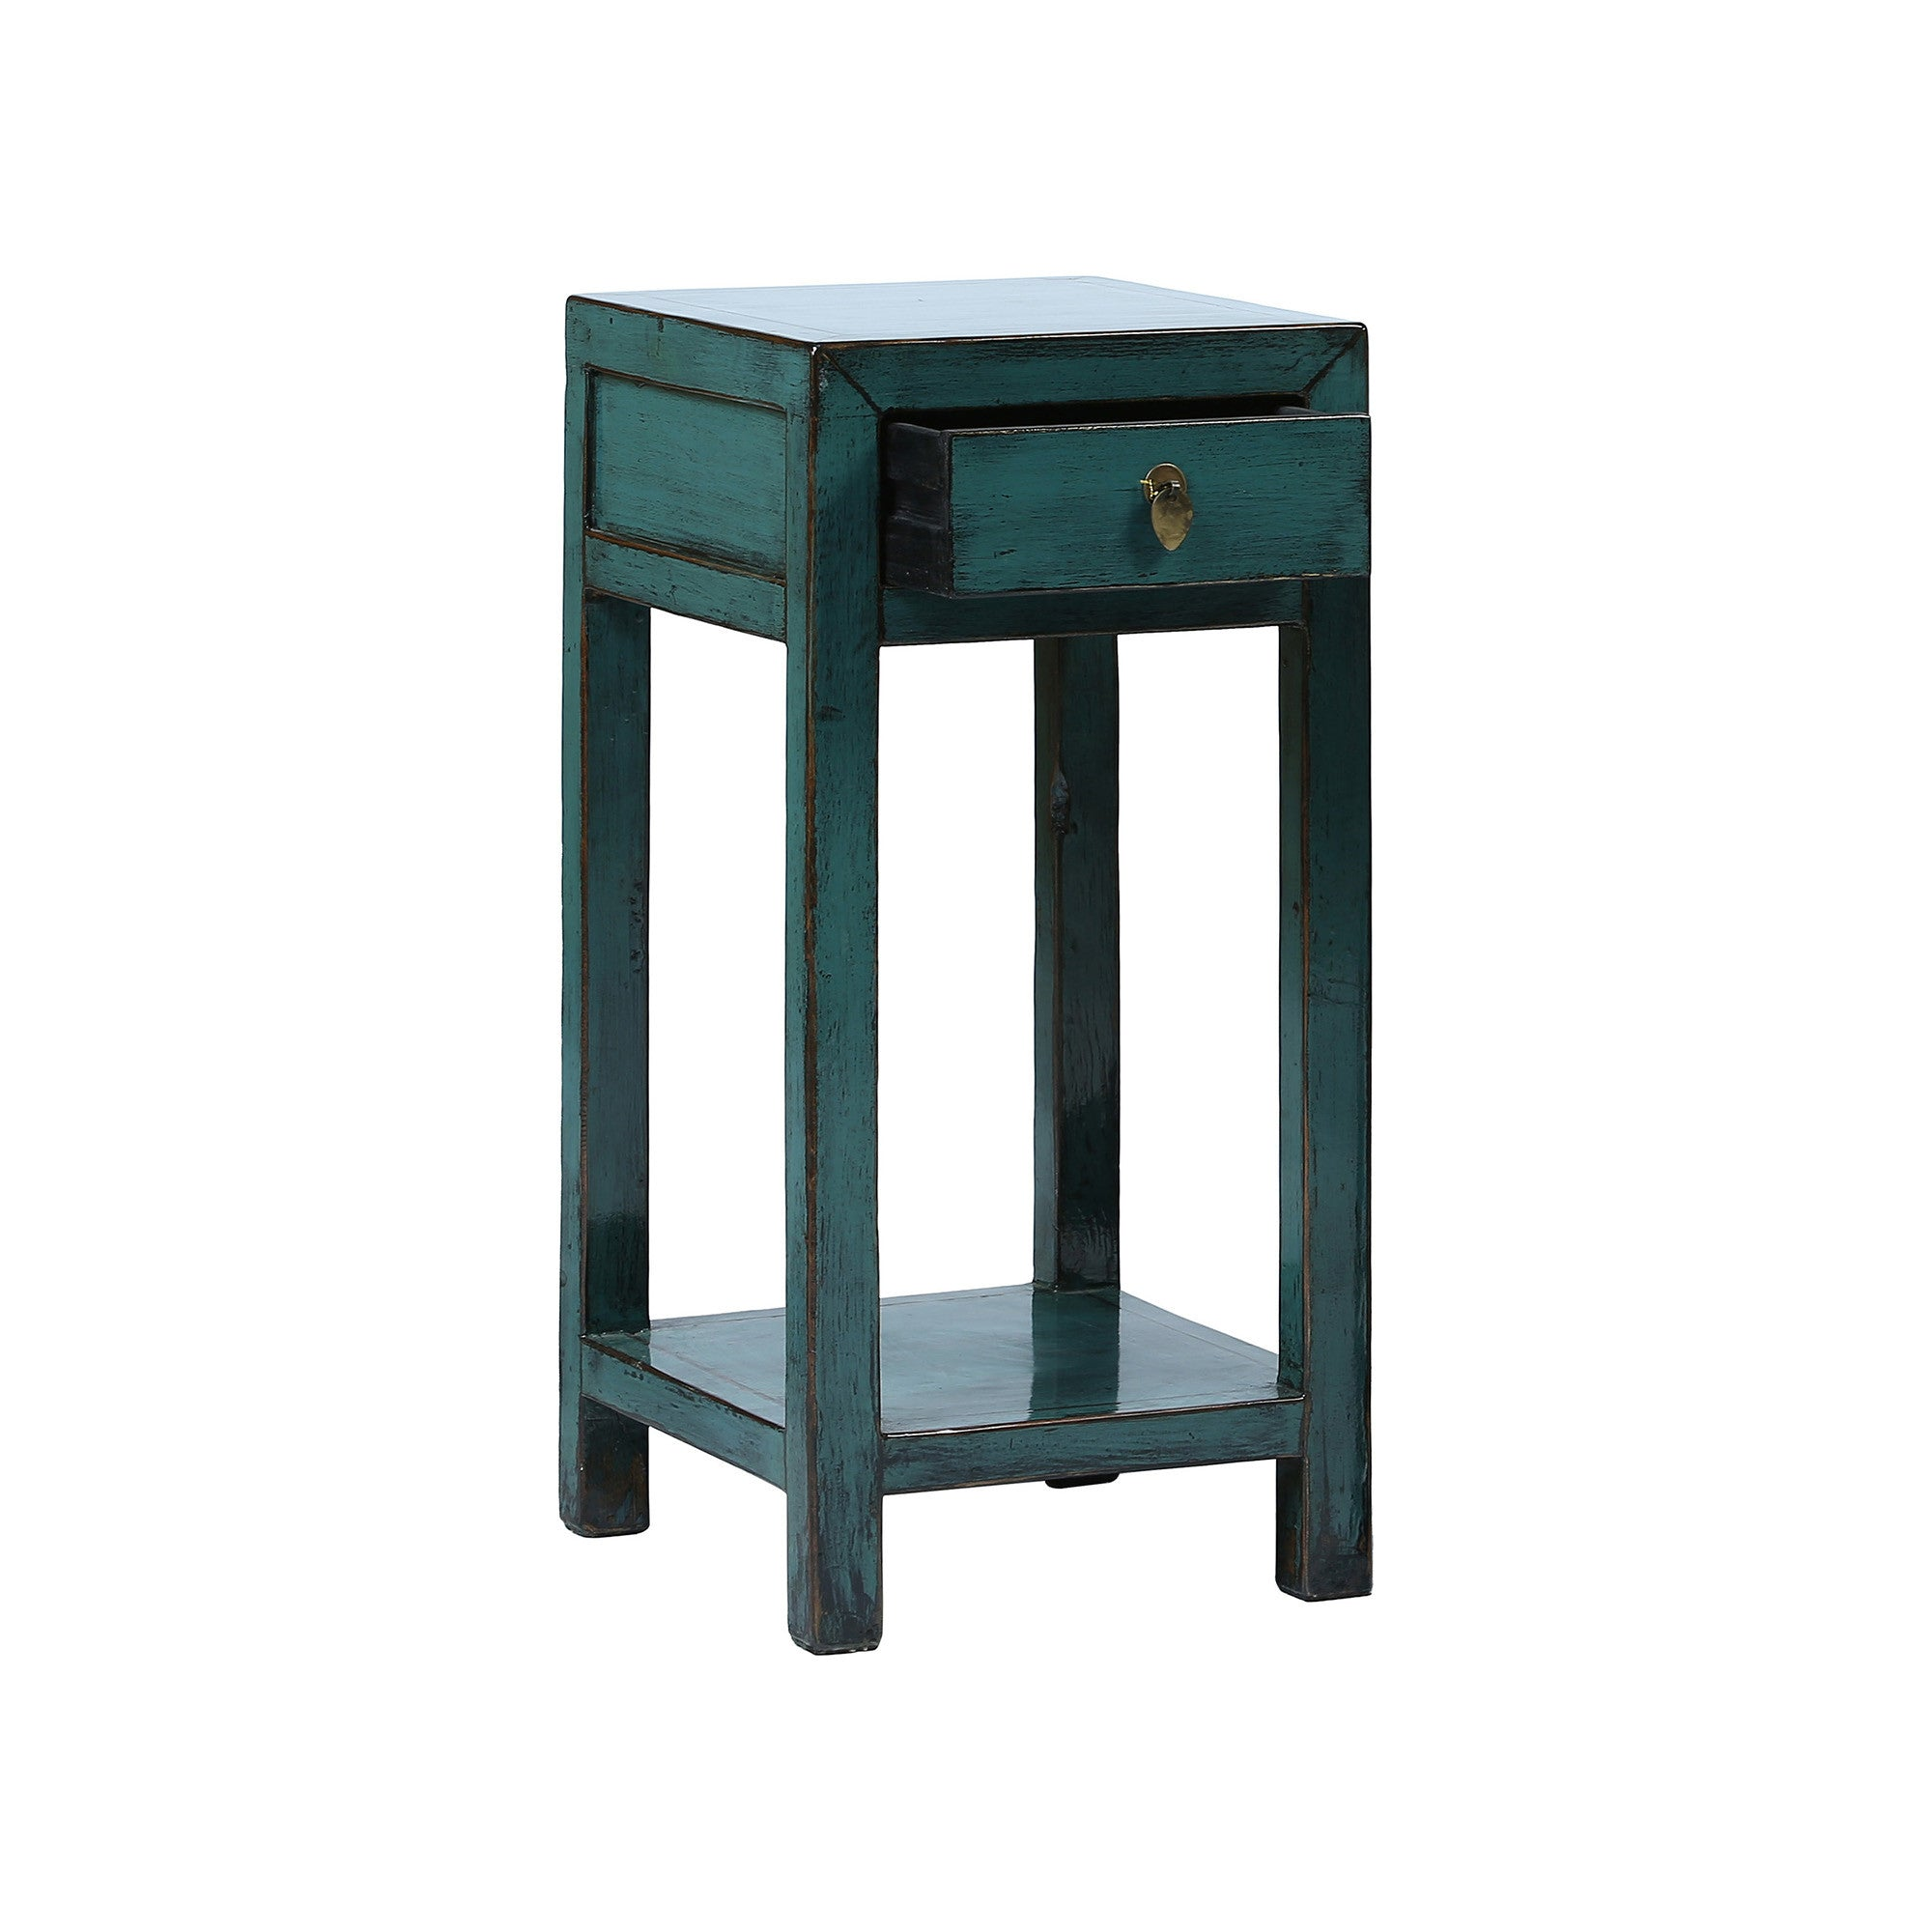 Square Blue Chinese Side Table with Shelf drawer open